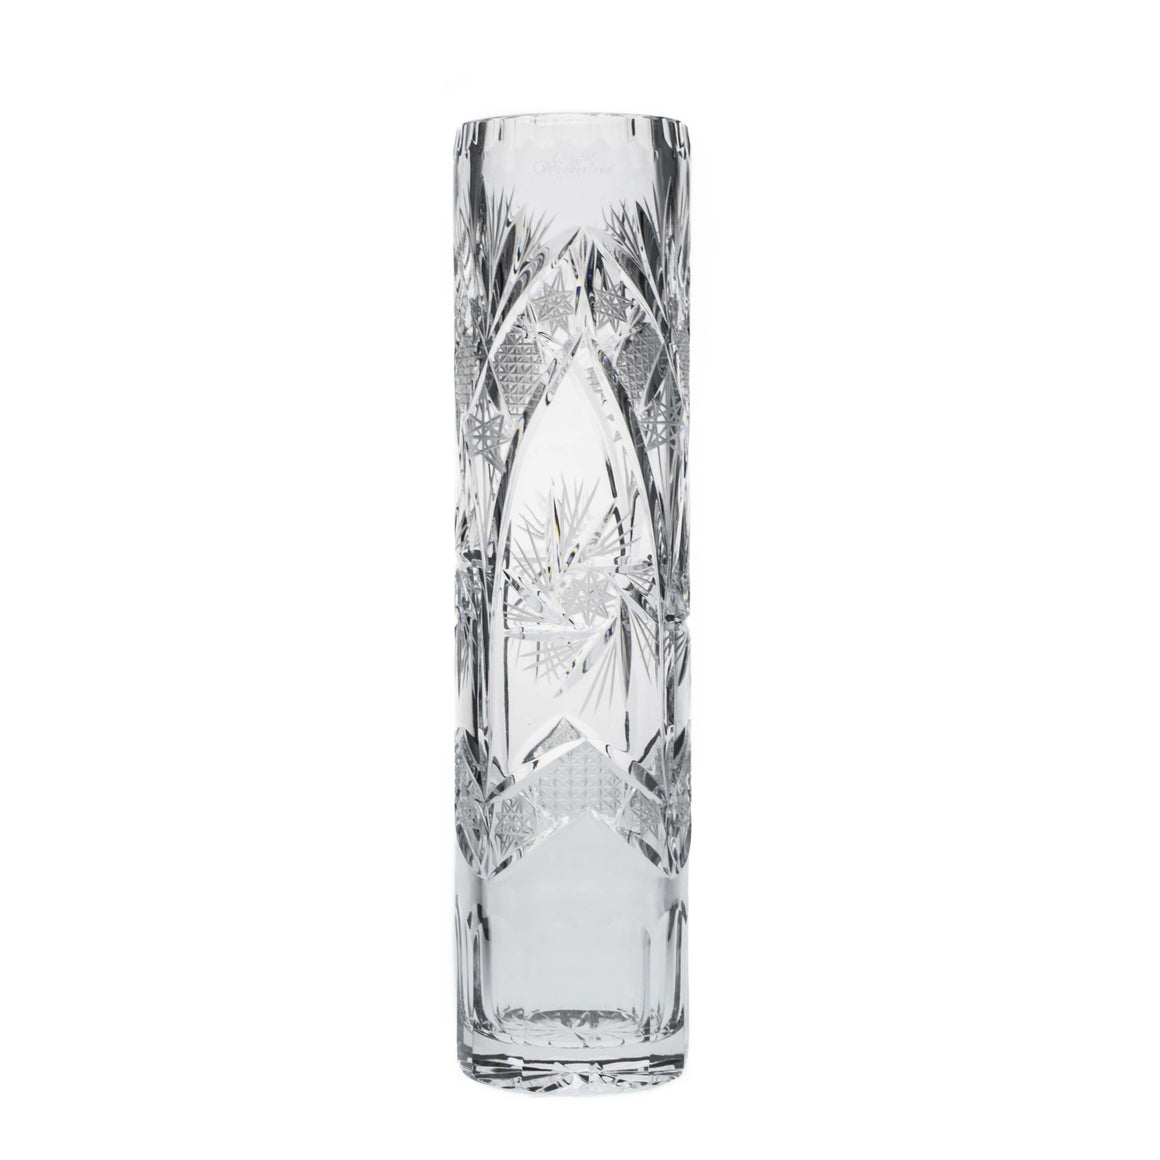 Starlet Crystal Cylinder Vase - The Crystal Wonderland